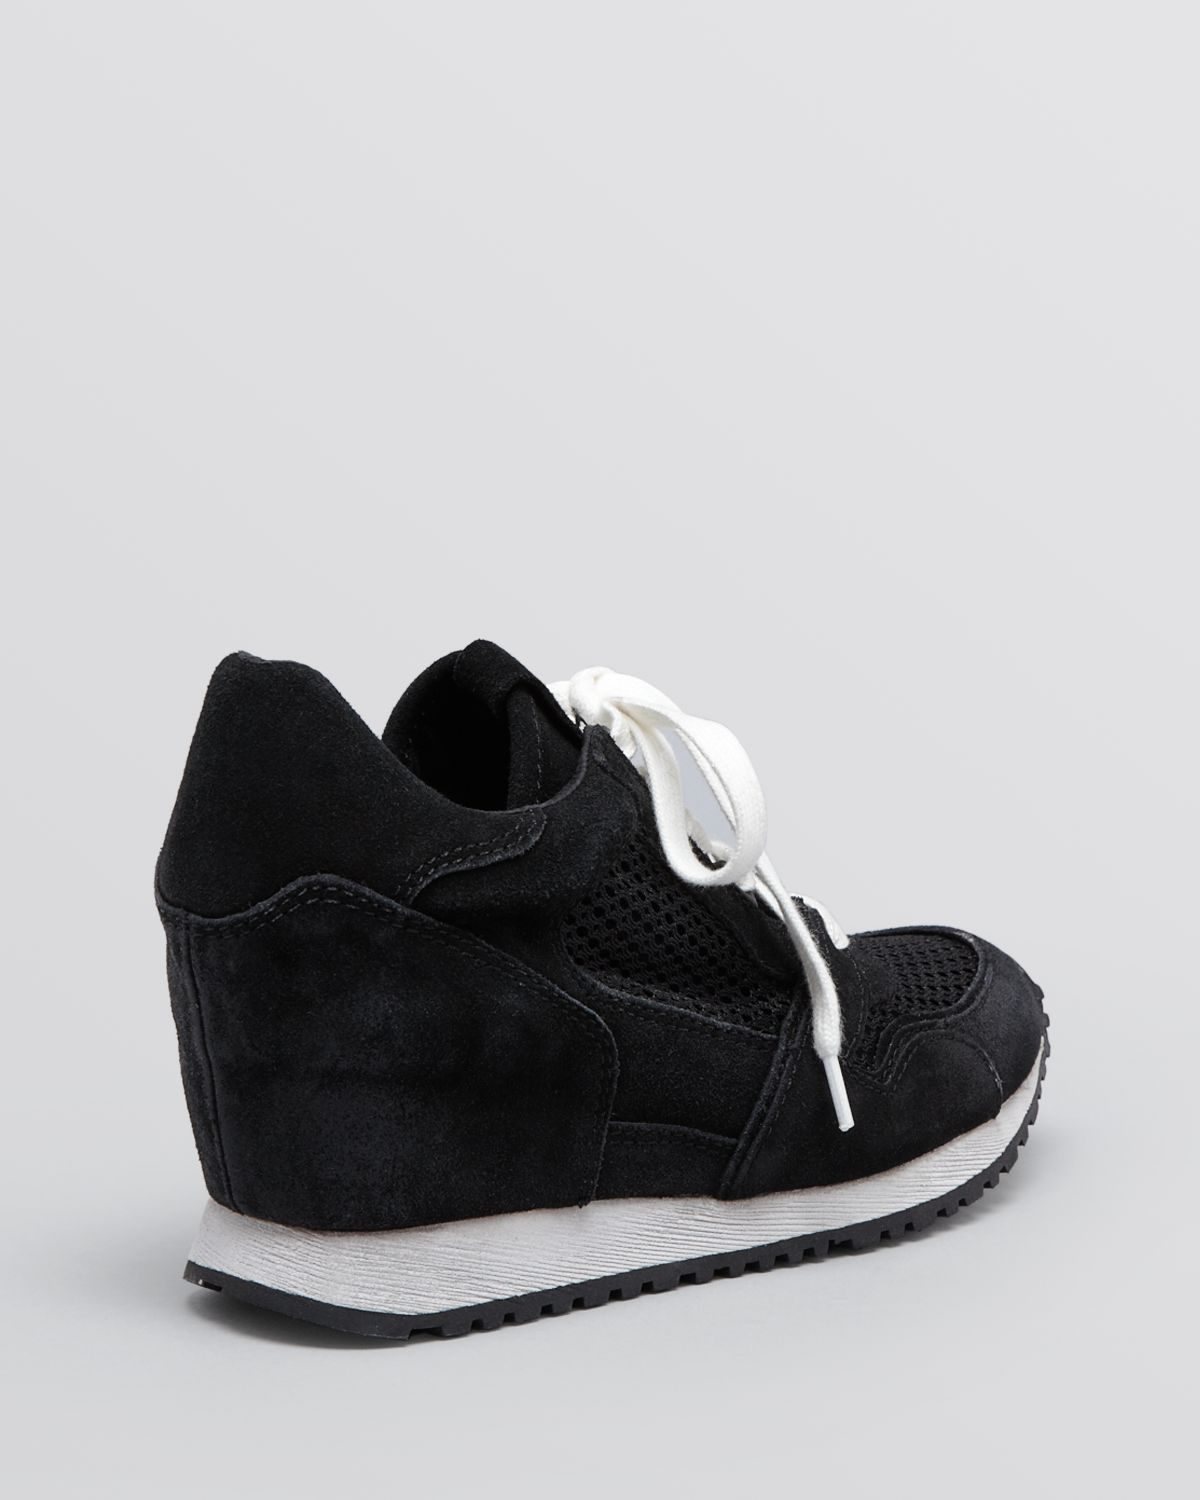 799198d84cd Gallery. Previously sold at  Bloomingdale s · Women s Wedge Sneakers  Women s Ash ...